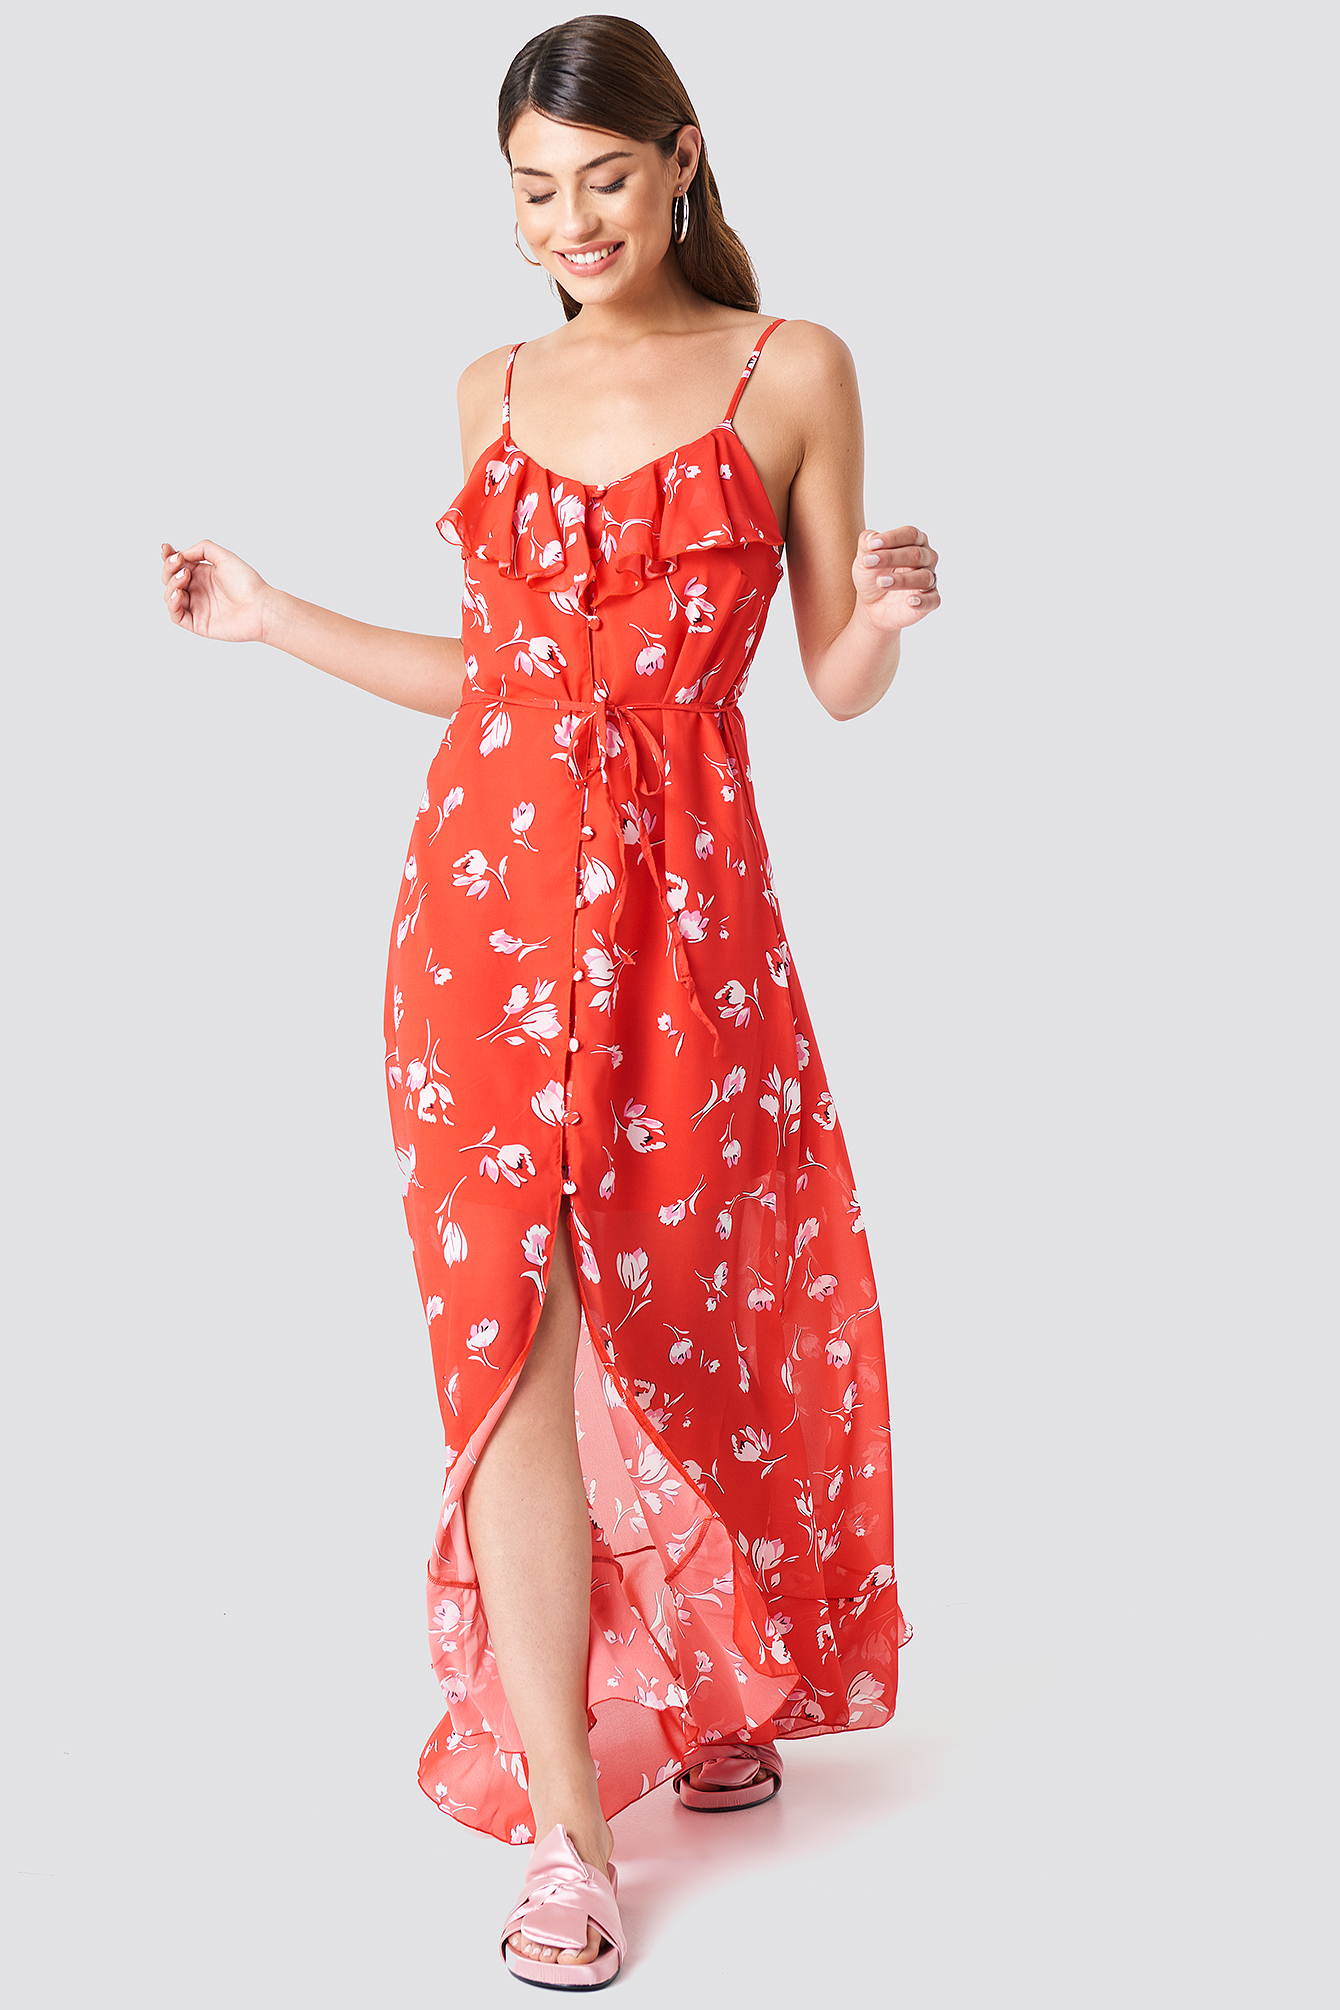 BUTTON DETAILED MIDI DRESS - RED